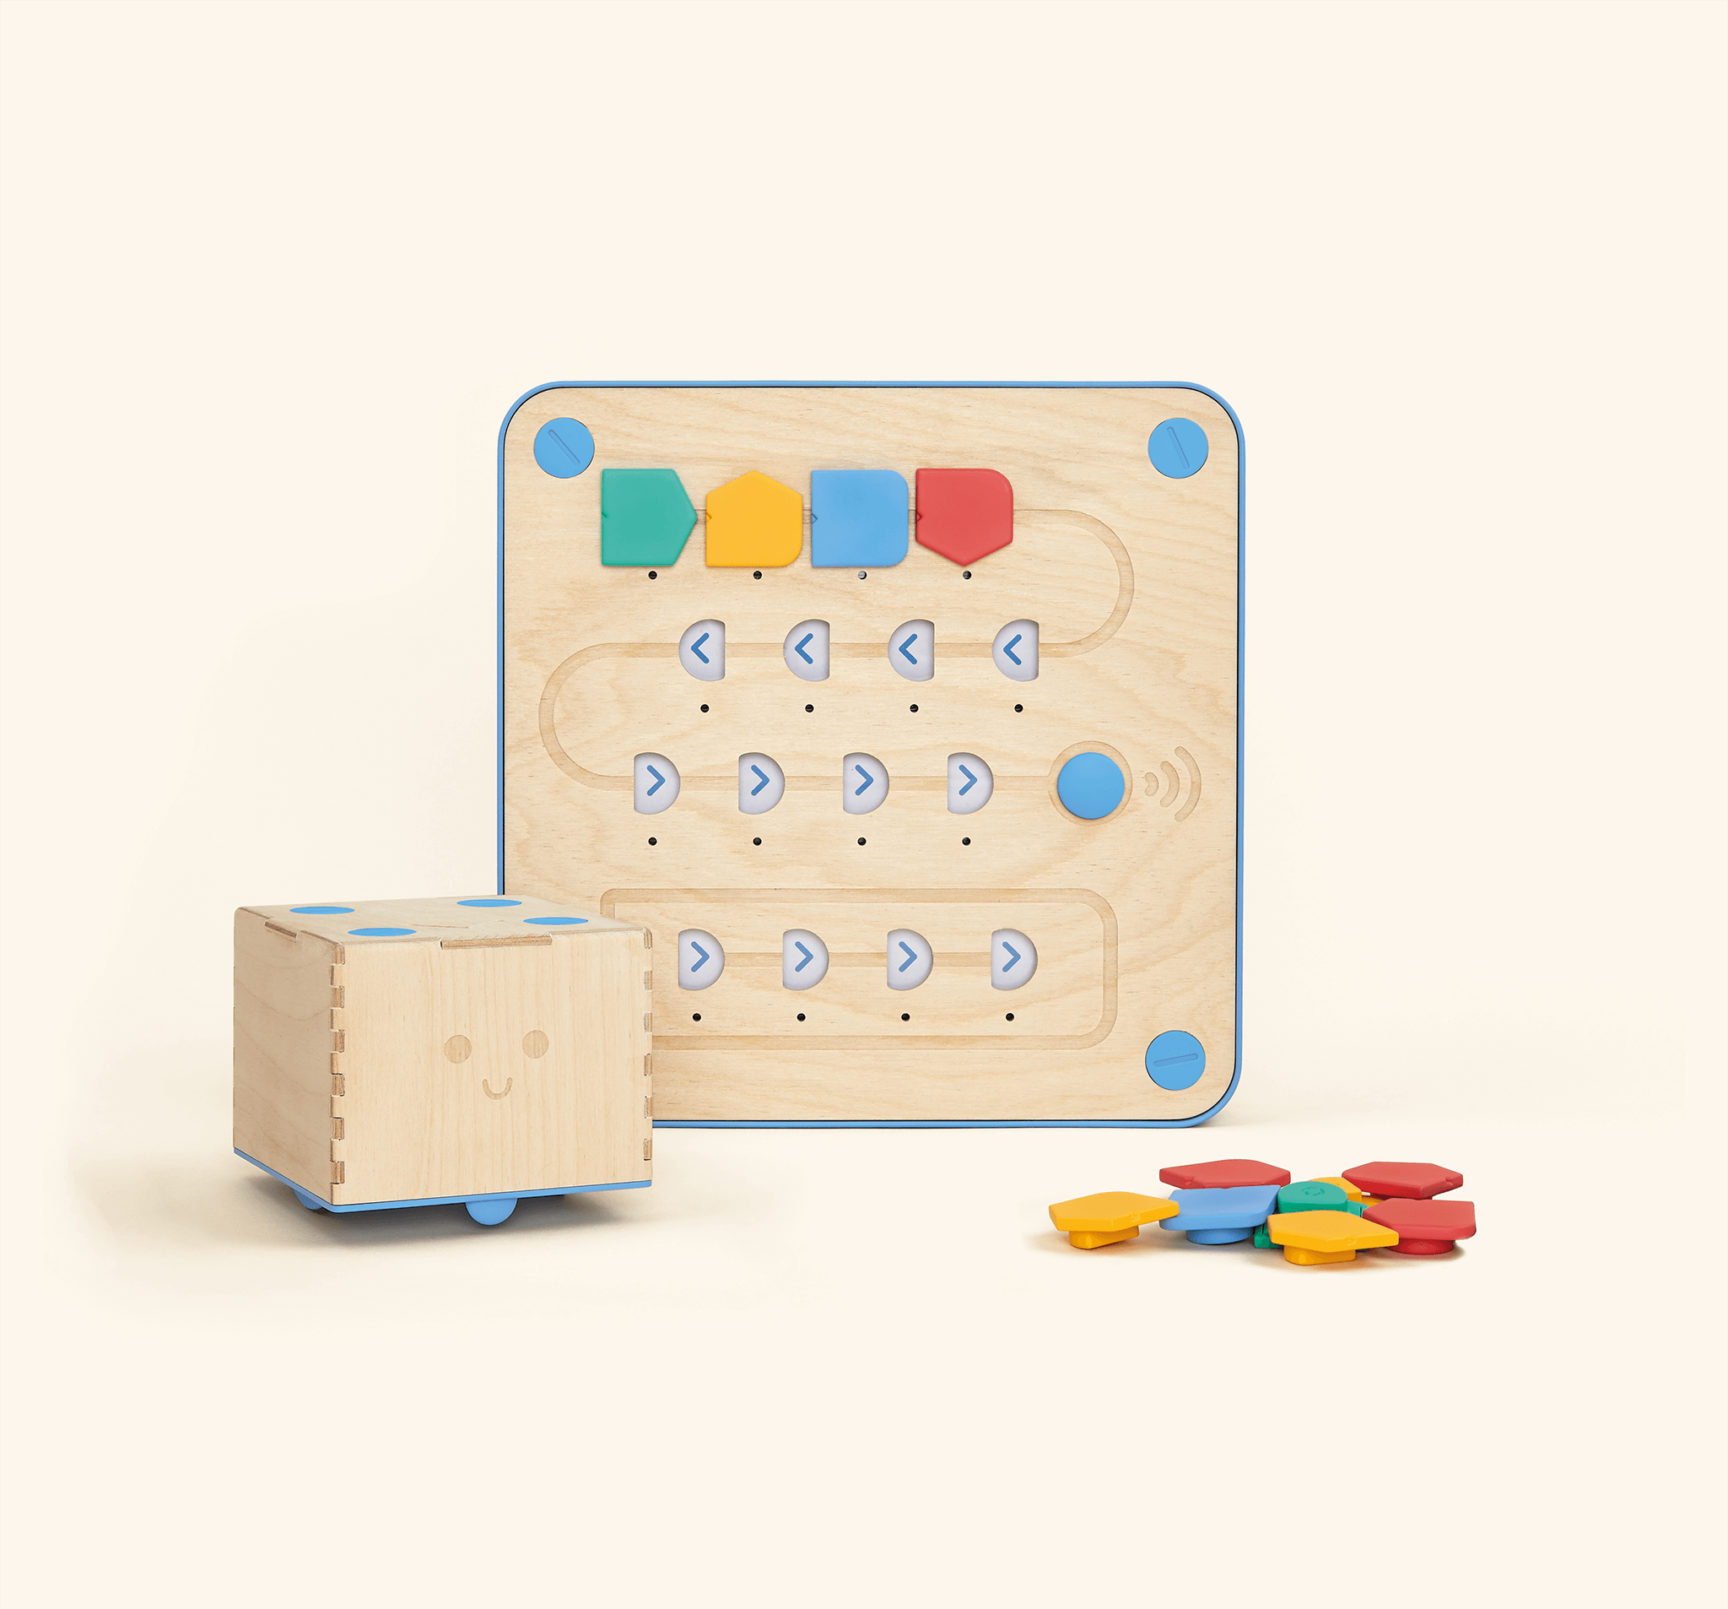 Cubetto A robot teaching kids code & puter programming